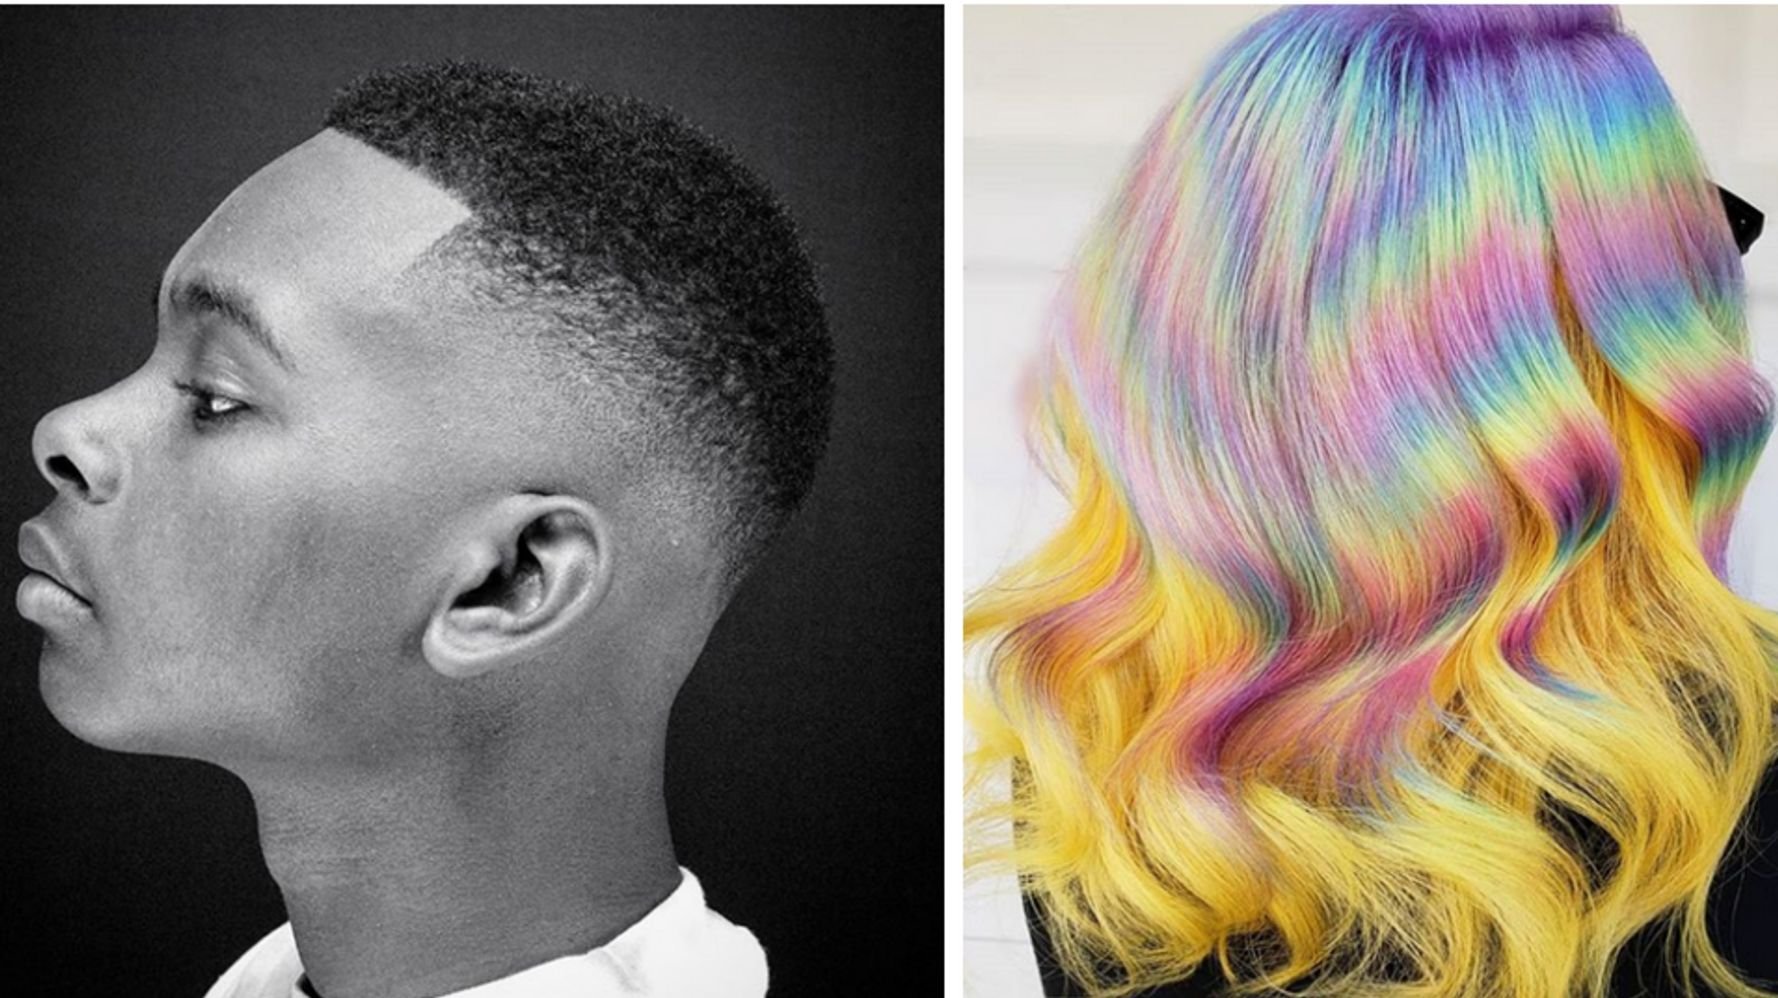 15 Instagram Accounts To Follow Before Your Next Haircut